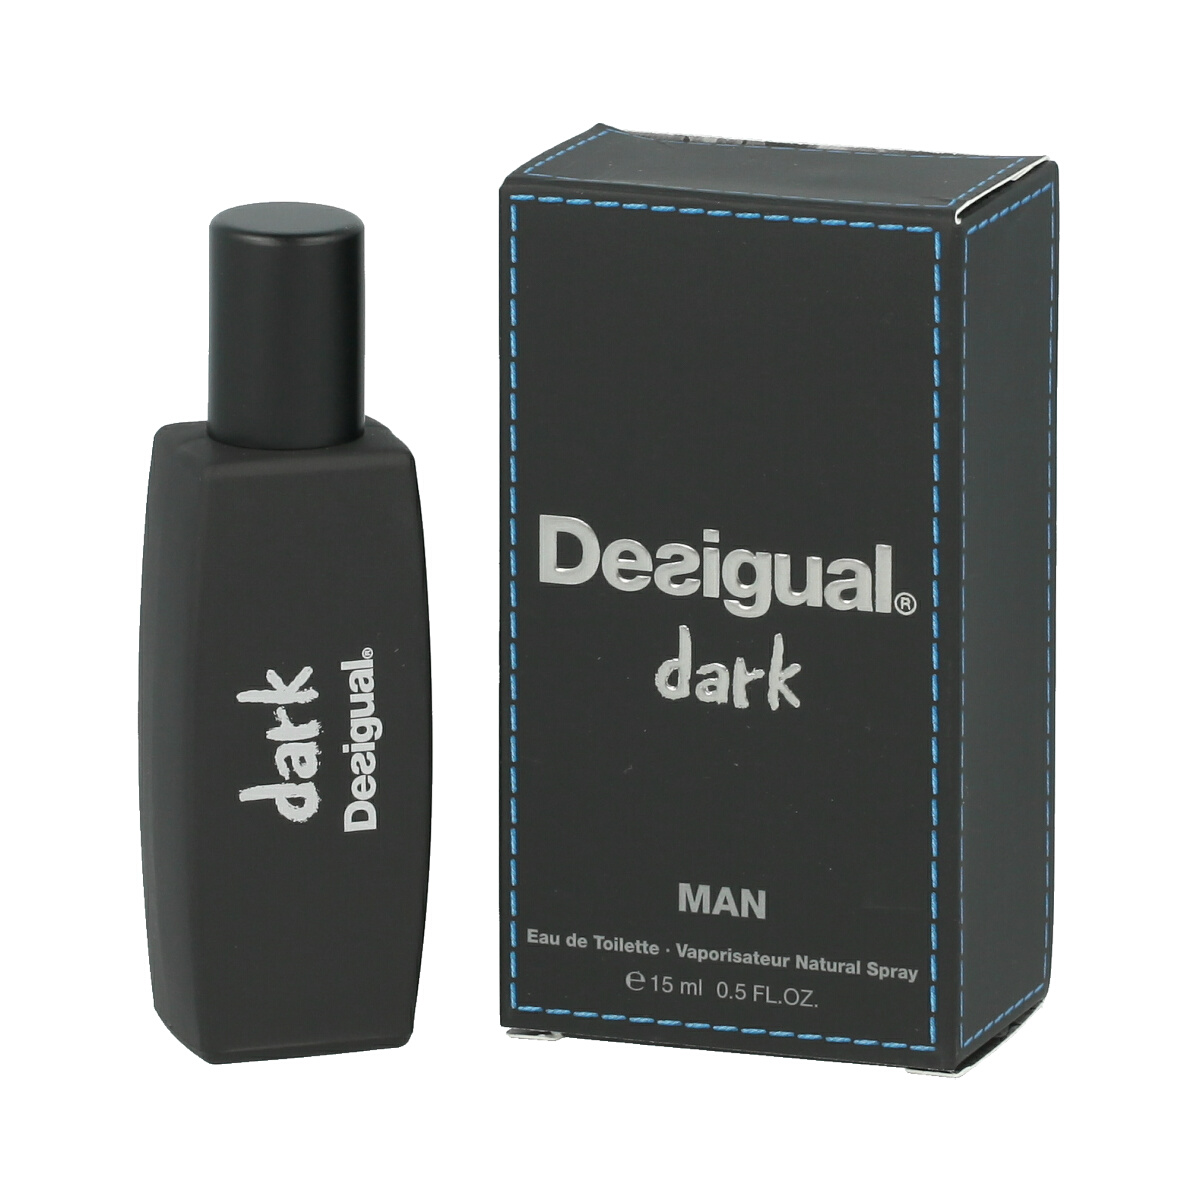 Desigual Dark Man Eau De Toilette 15 ml (man) 98925